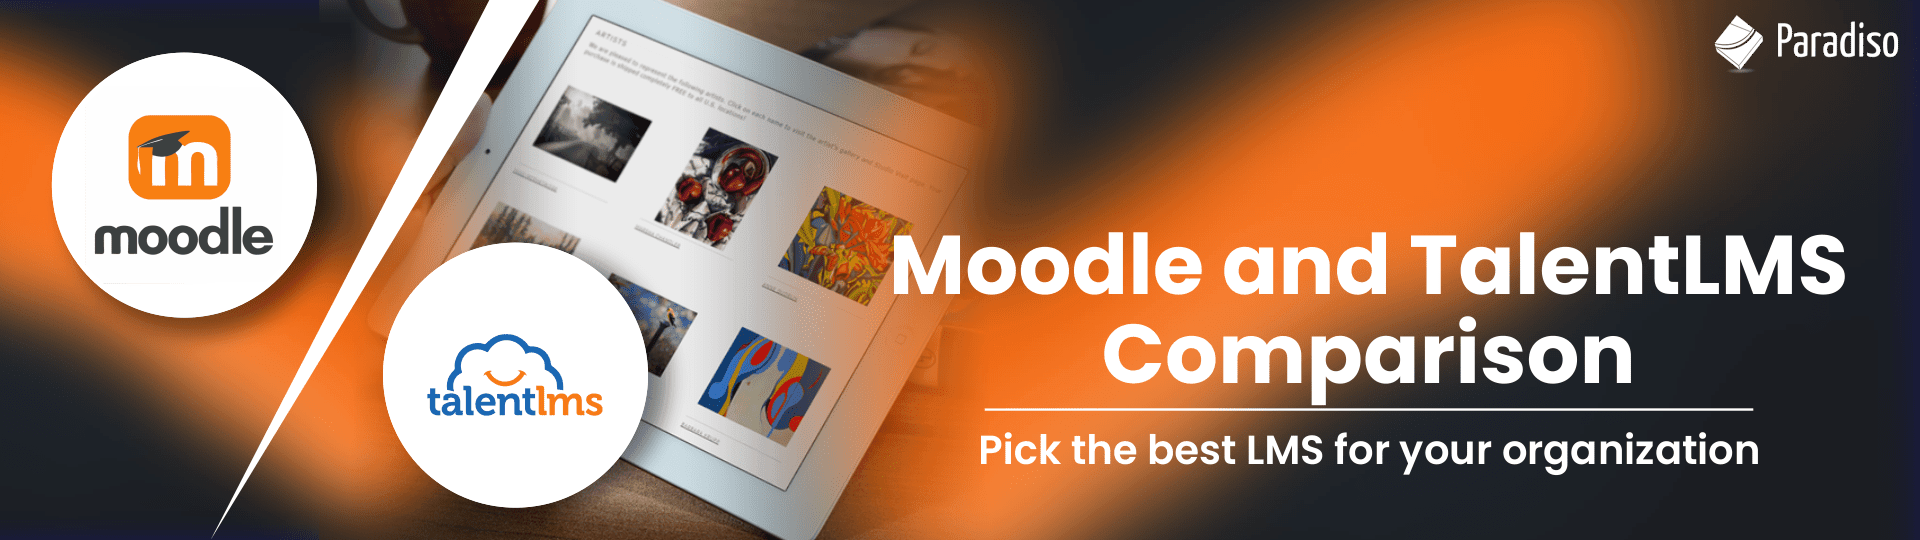 Moodle vs TalentLMS: Which one is better?